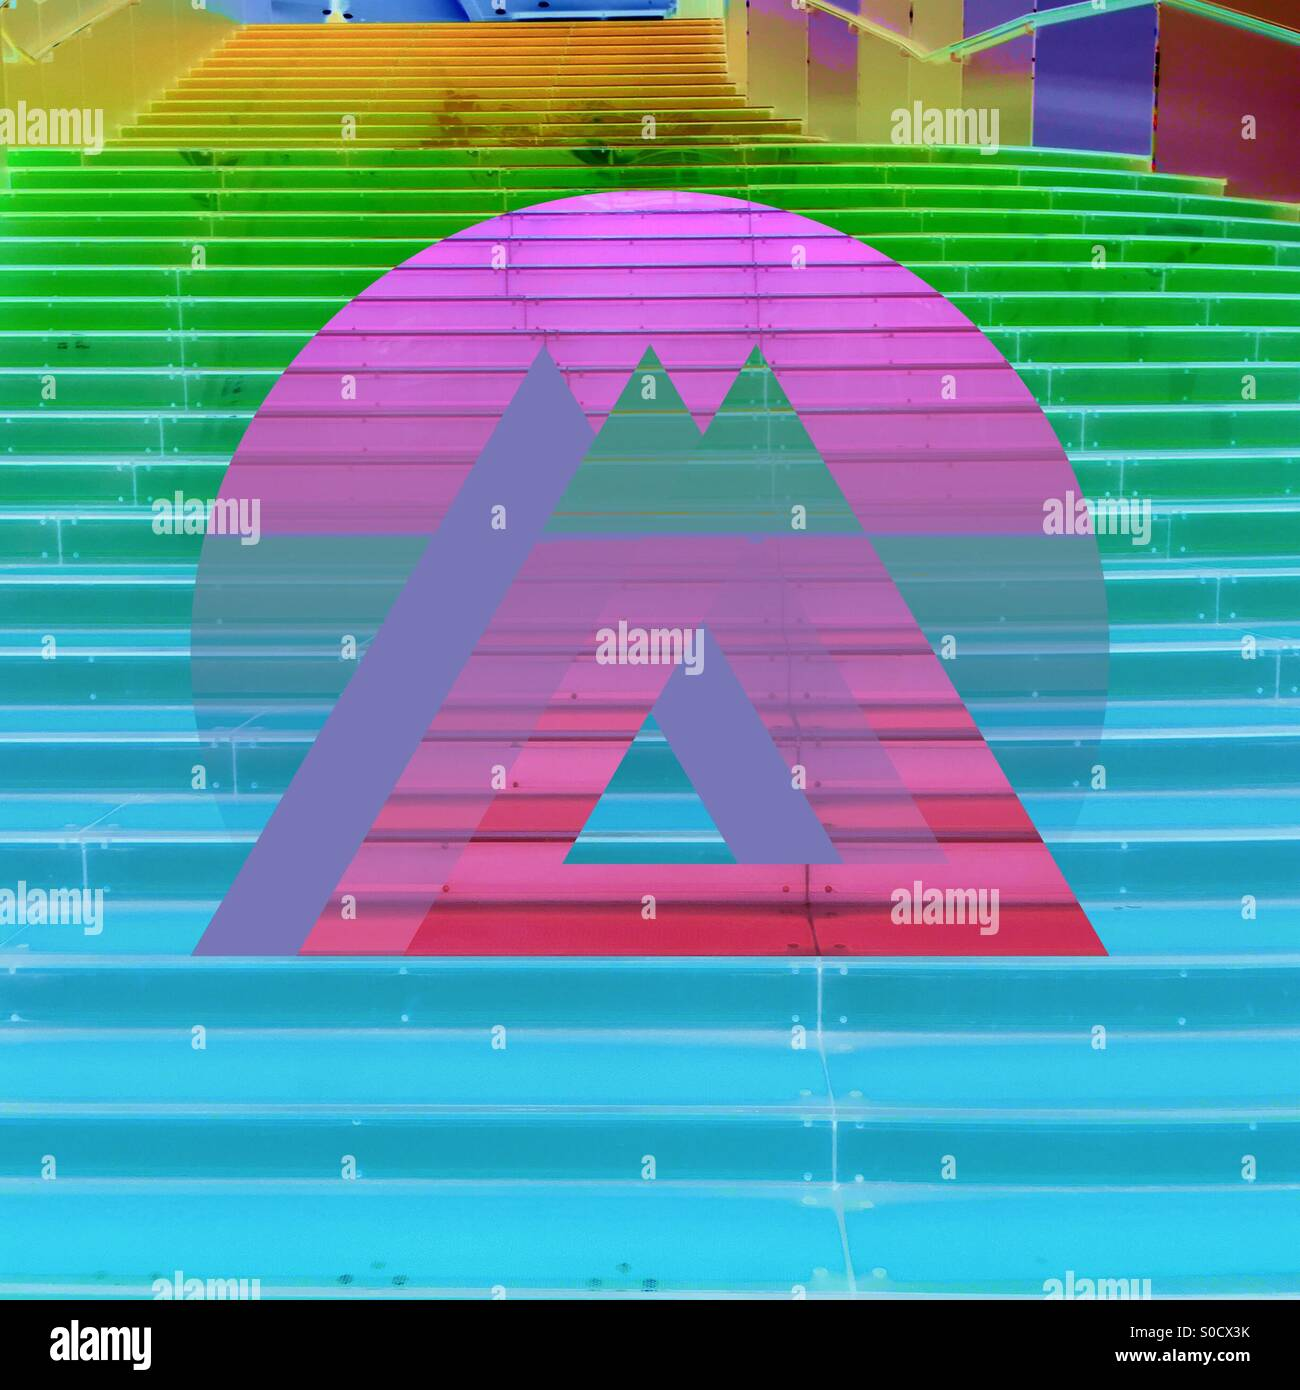 Stairs made abstract, colorful and geometric with rainbow gradients under circular and triangular shapes. - Stock Image